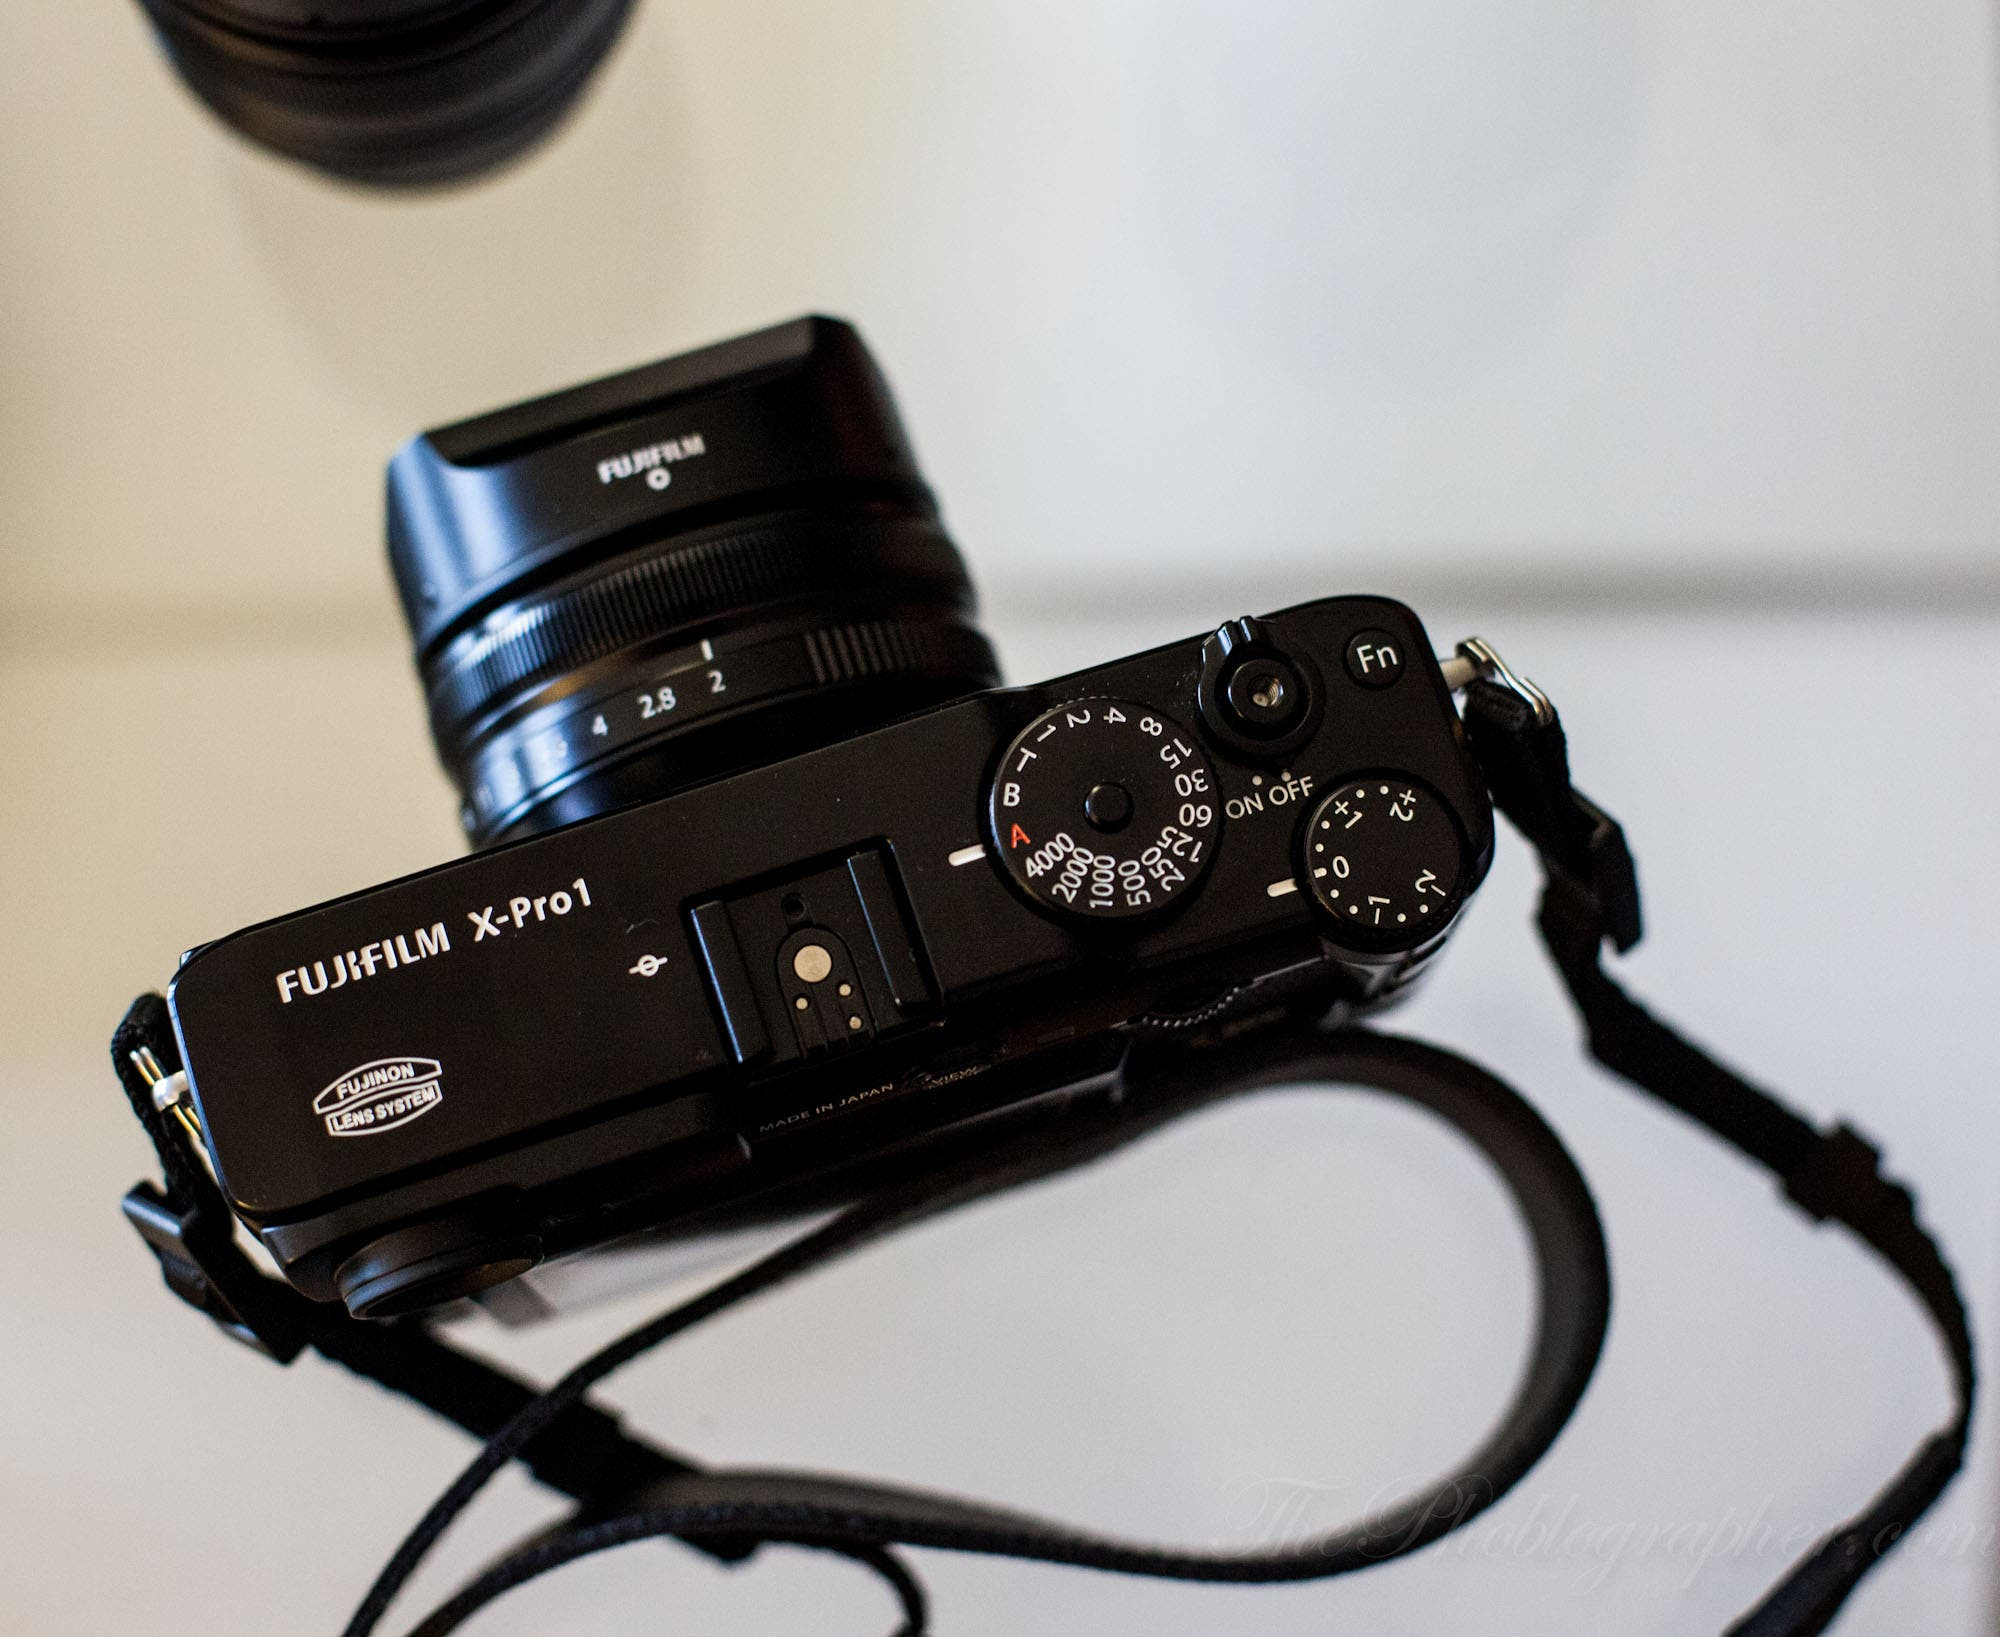 Old But Gold: 4 Digital Cameras You Should Hunt Down and Lust Over